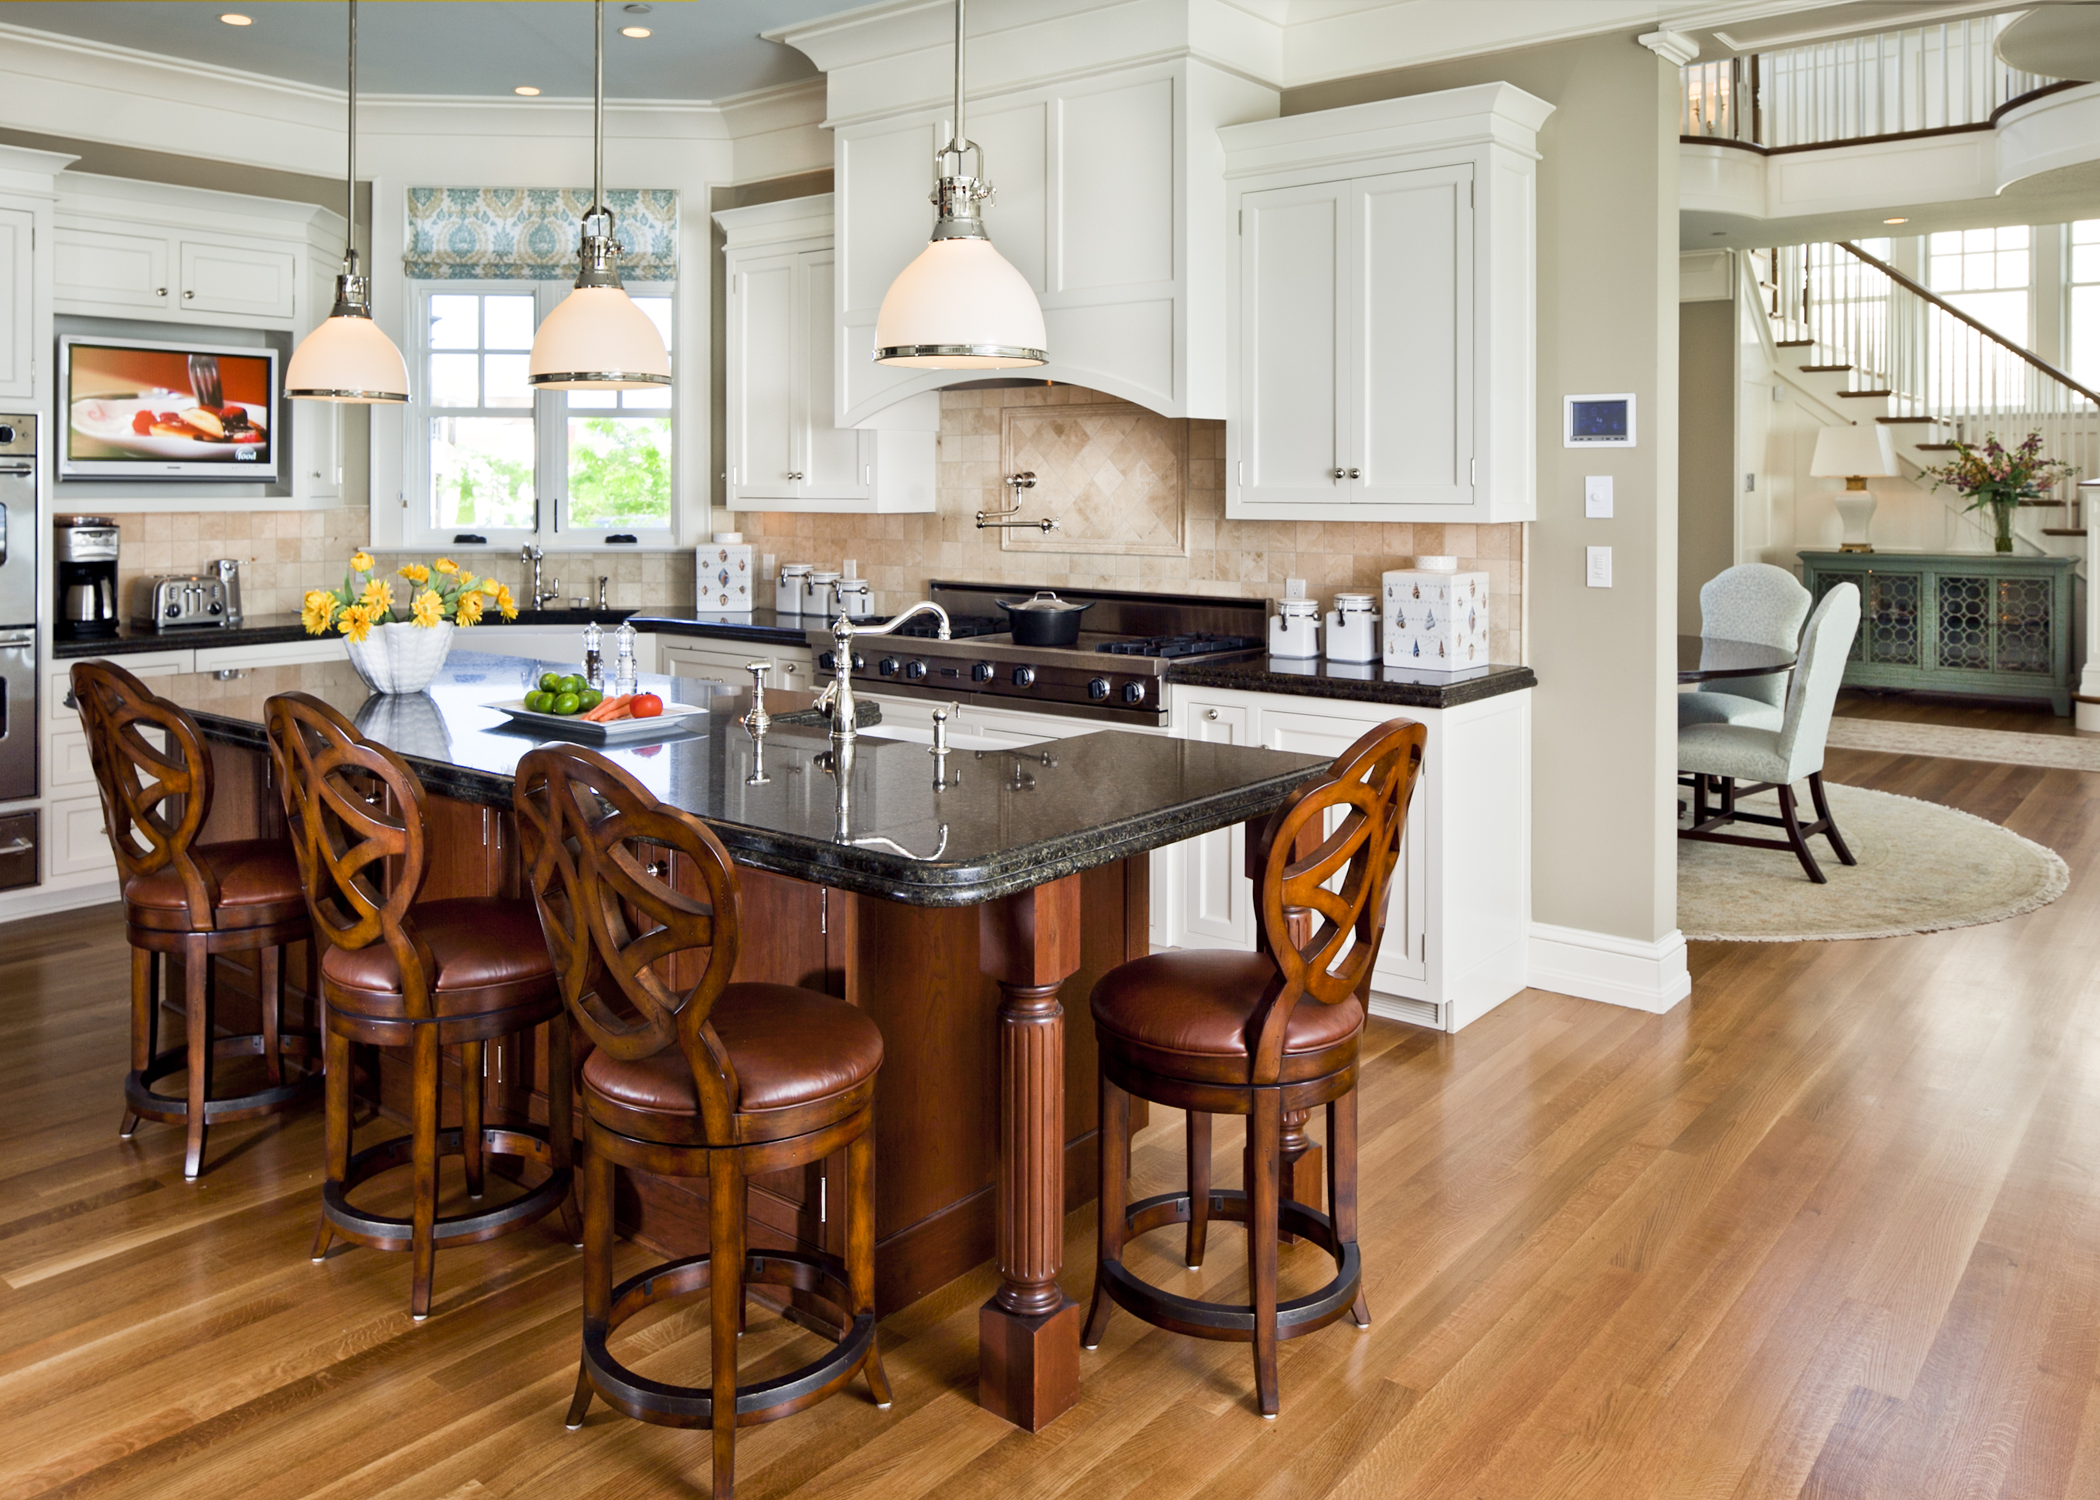 Kitchen from a home that won a 2010 BALA for Custom Home